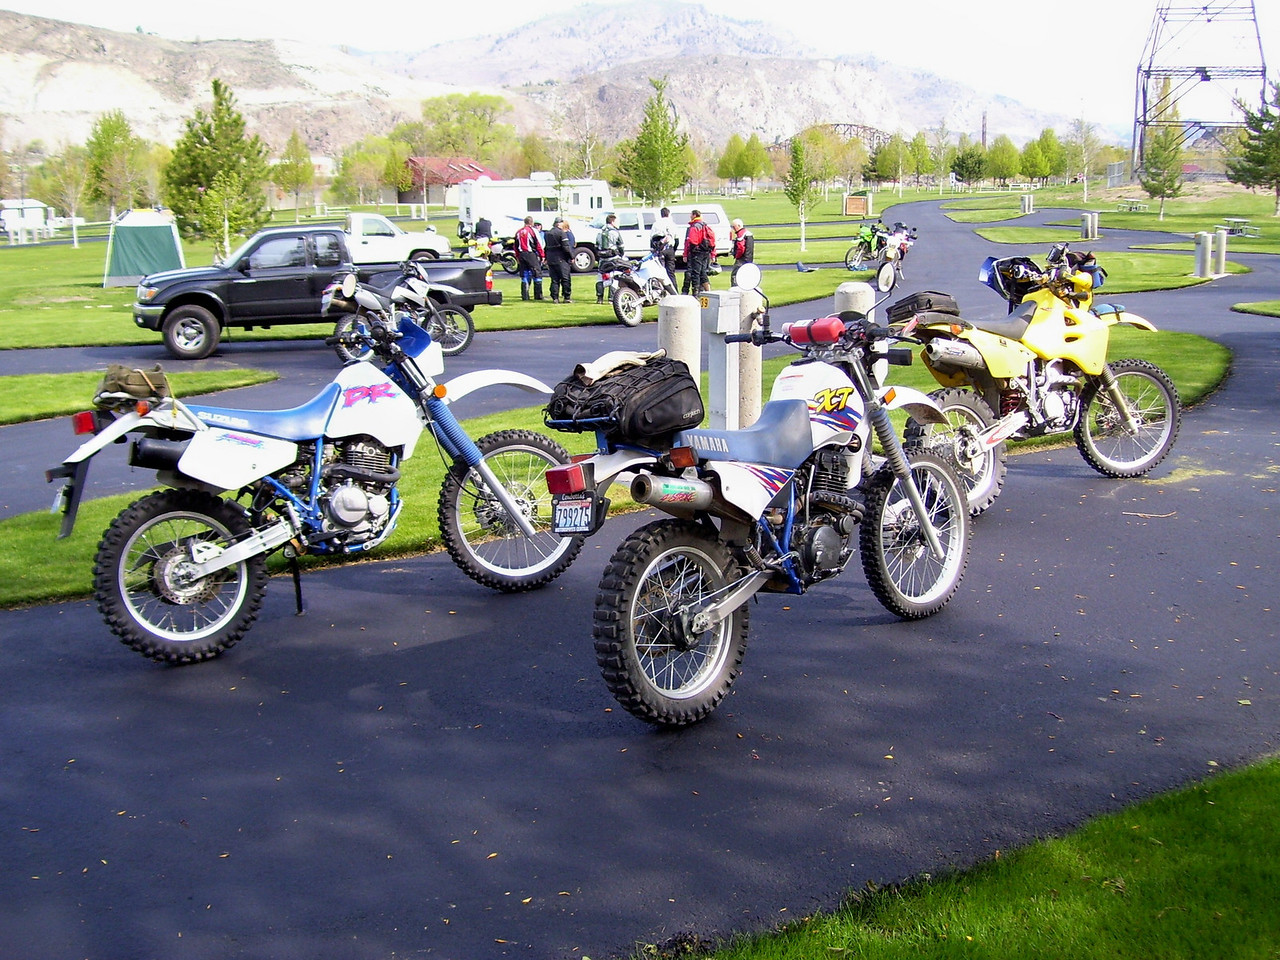 We had mostly 350cc and 400cc Dual Sport bikes with two KLR 650s and a DR 650.